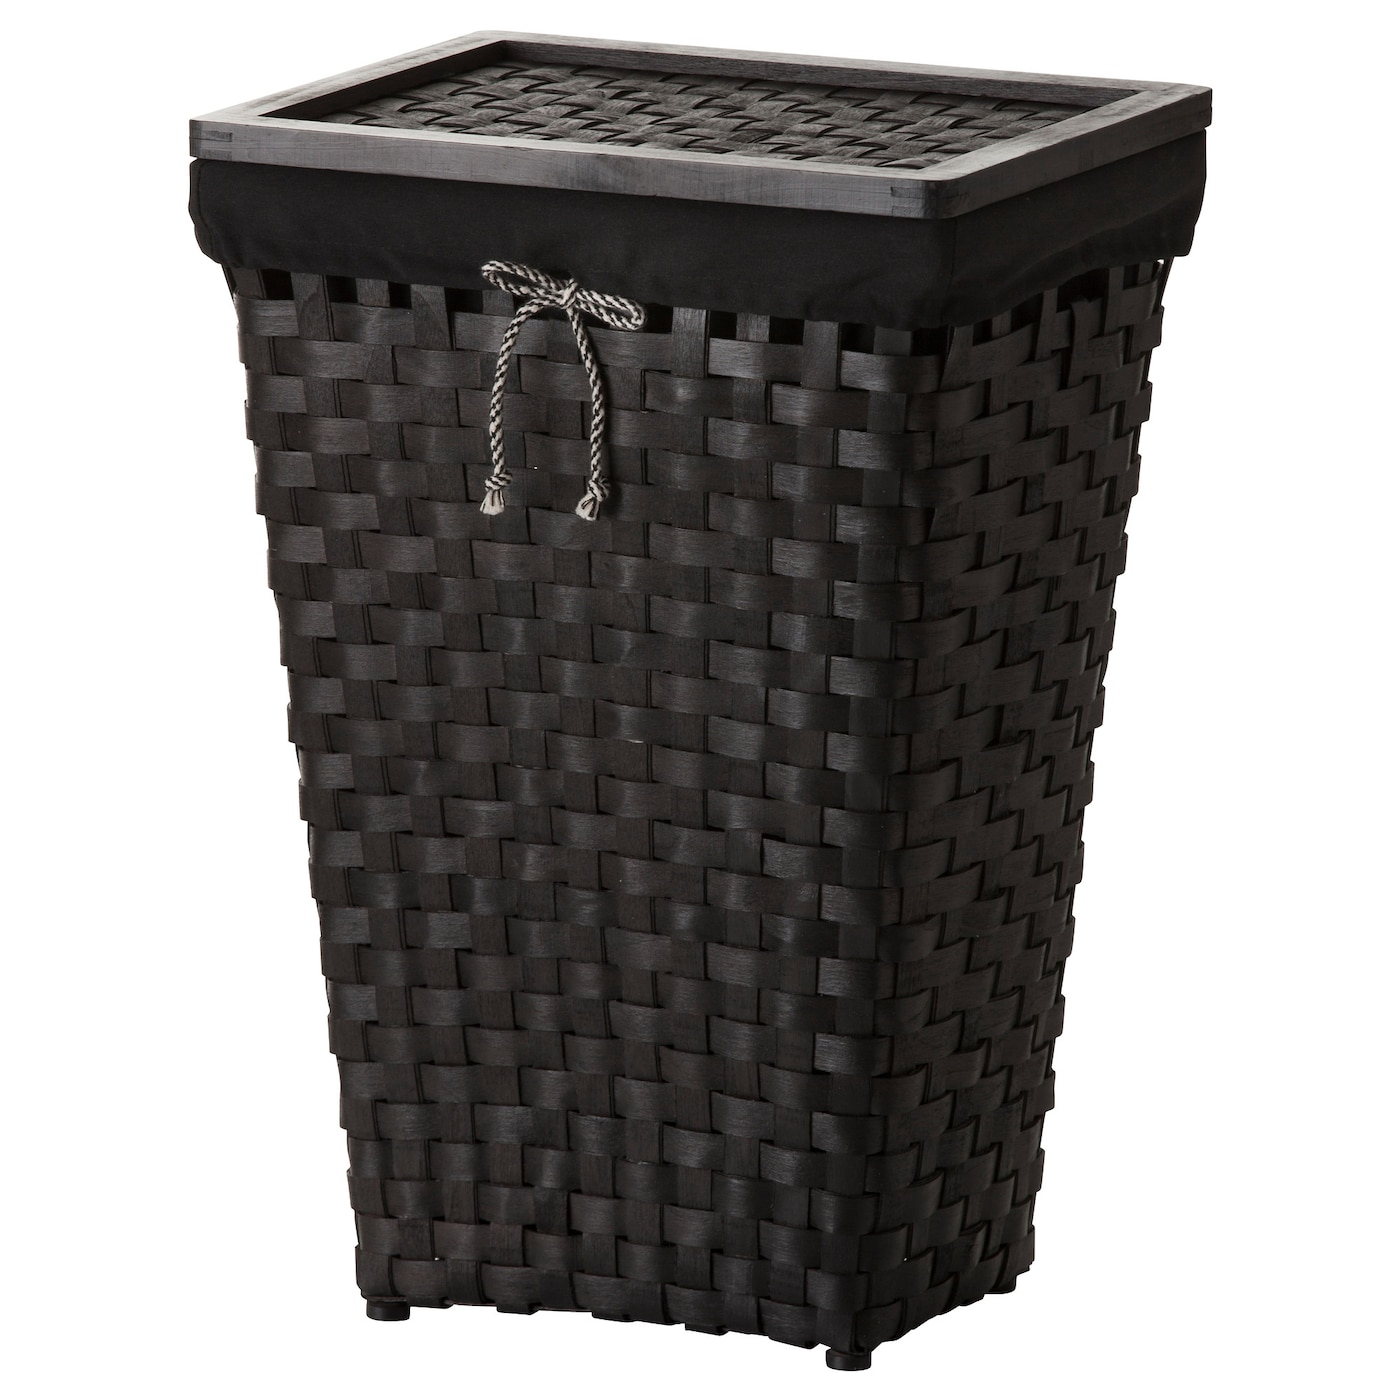 Ikea Knarra Laundry Basket With Lining The Plastic Feet Protect From Moisture